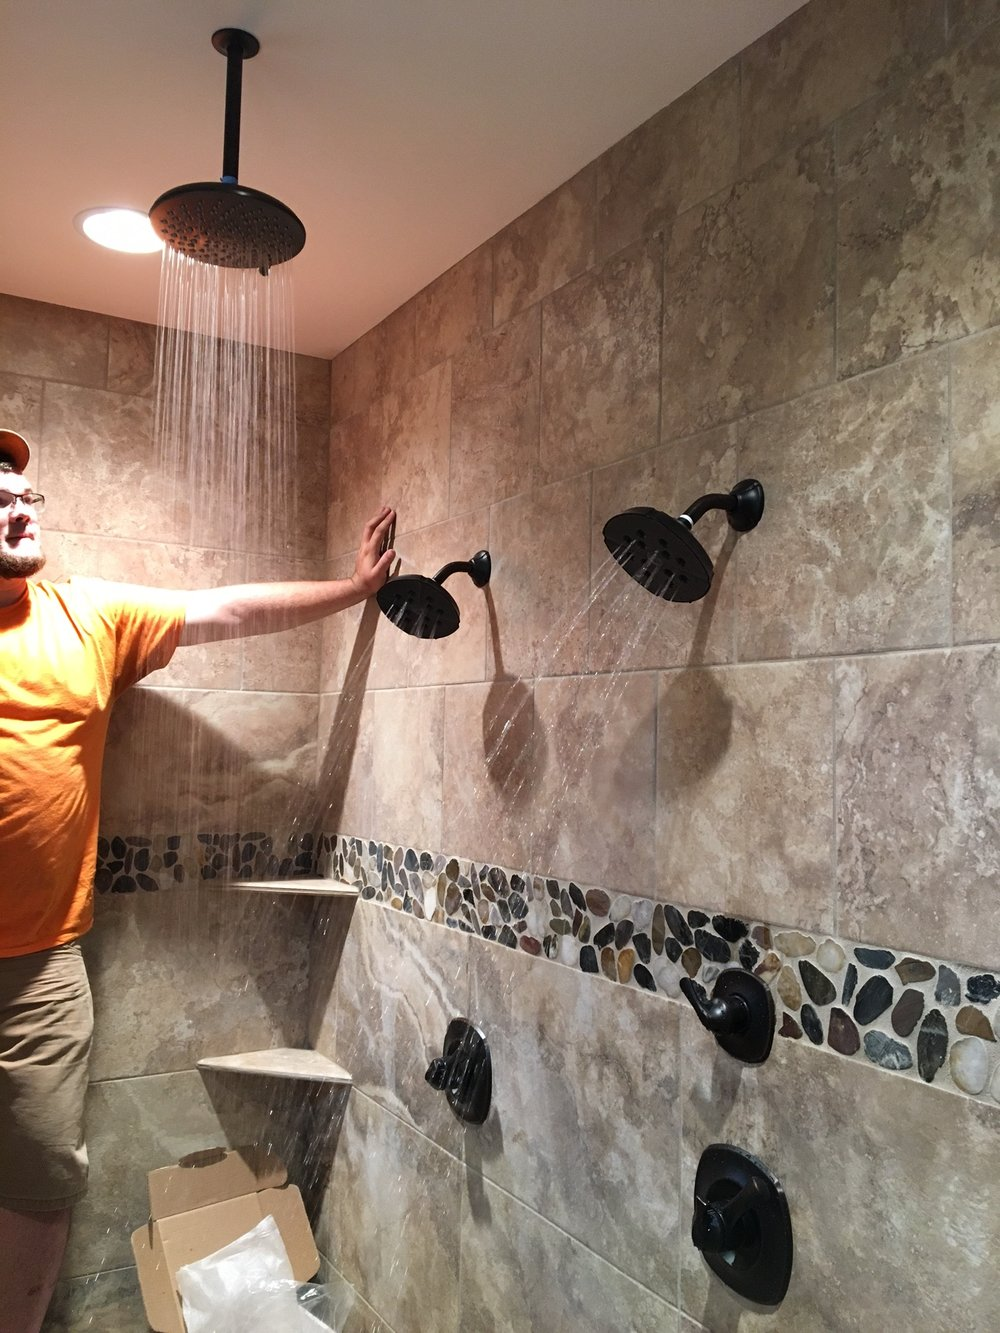 Home Plumbing - Shower Installation